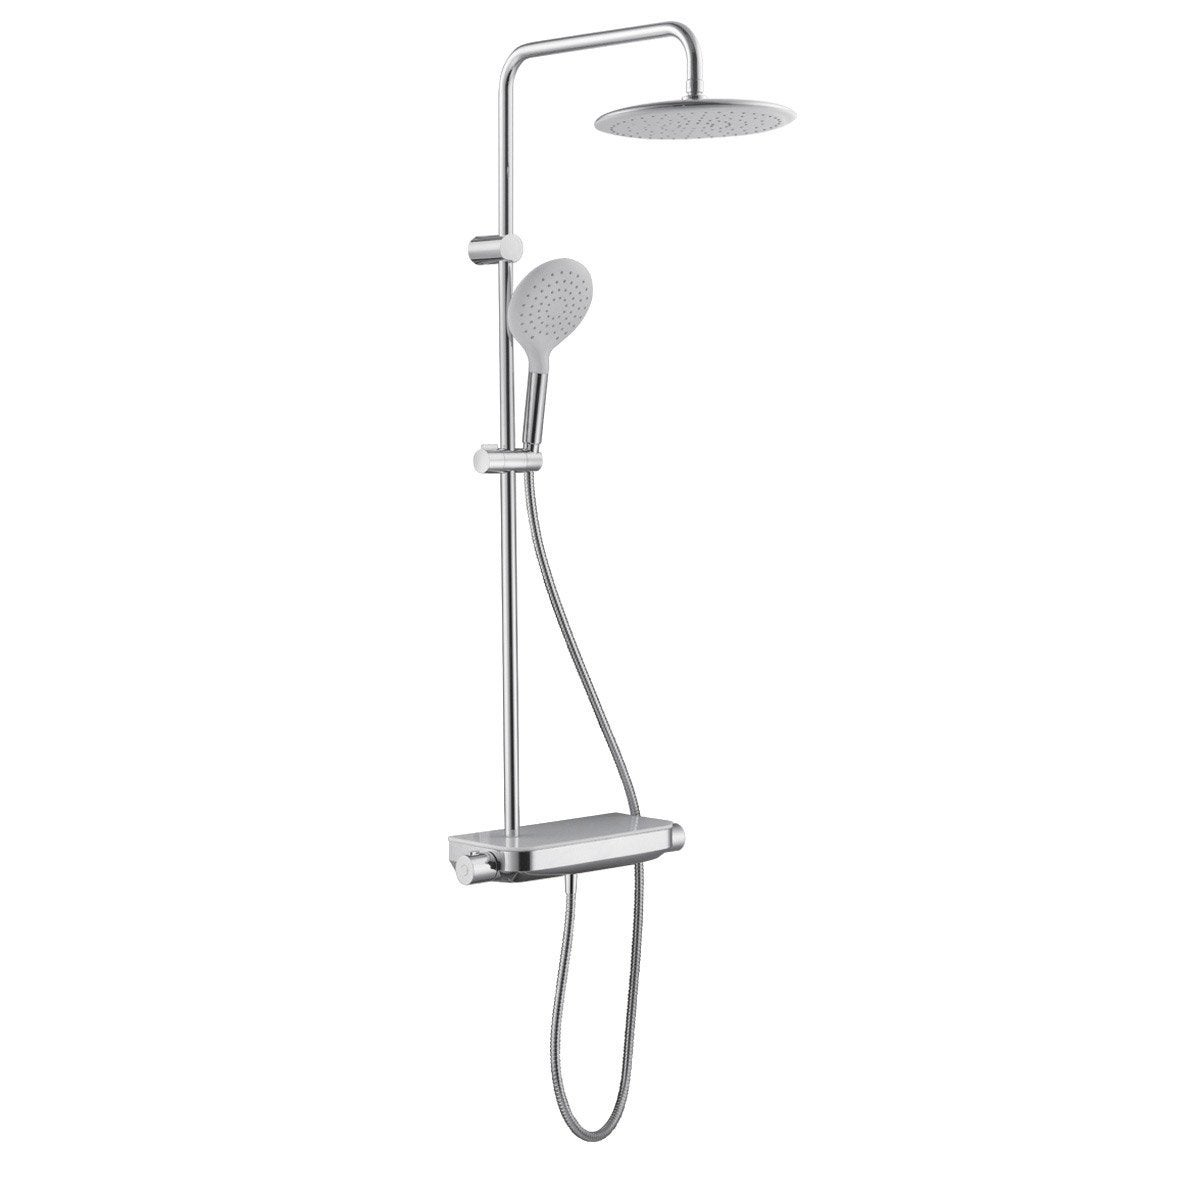 Colonne de douche sensea tabla leroy merlin for Douche chez leroy merlin